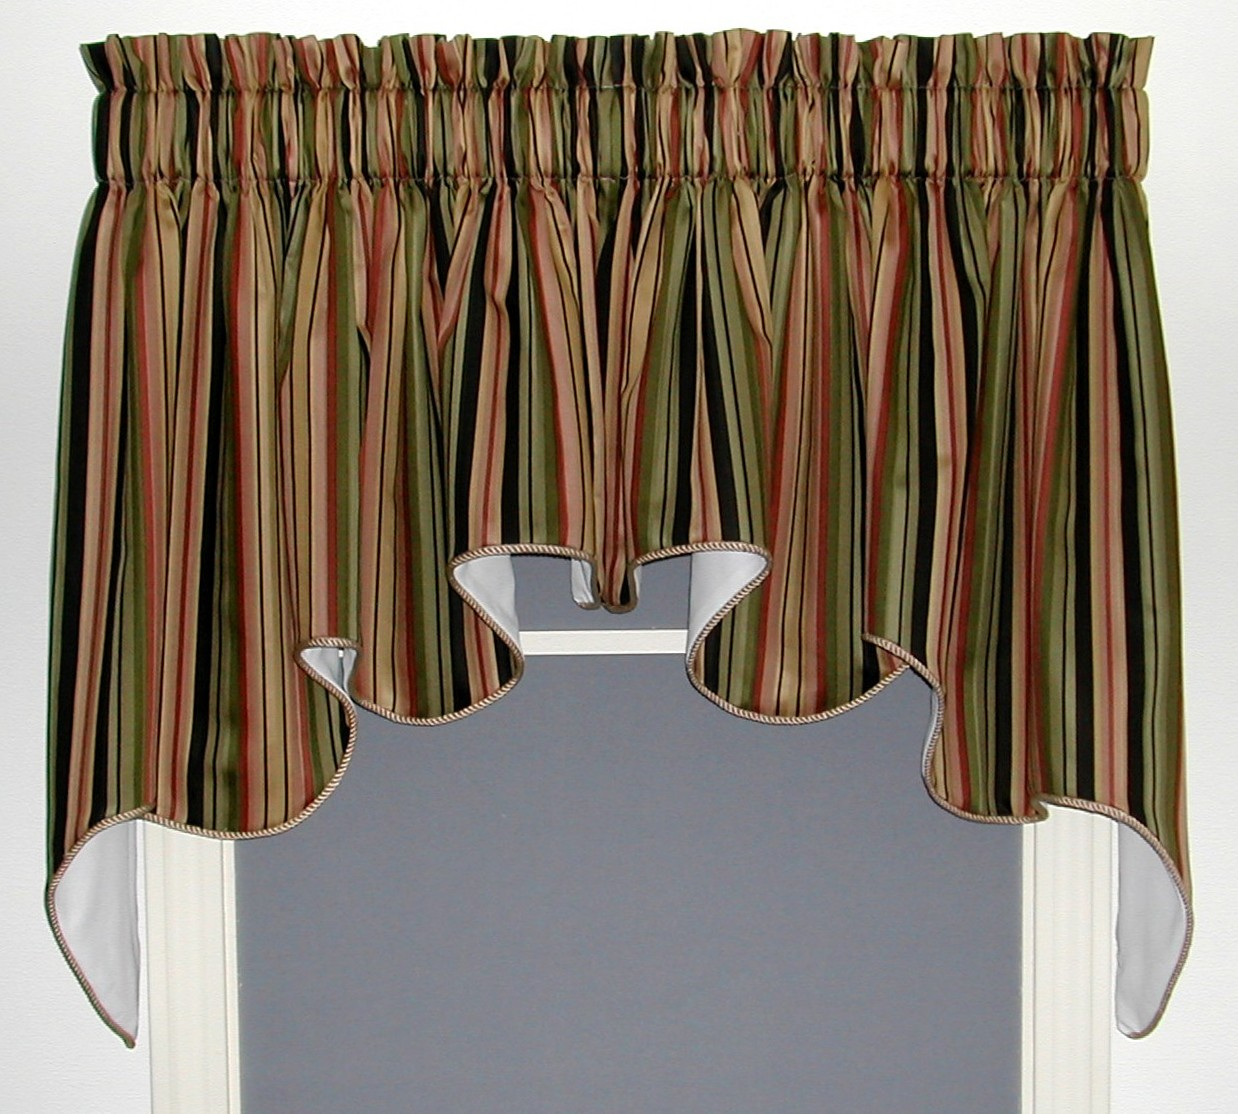 Montego Stripe Lined Scalloped Valance: Valances, Swags & Window Toppers ­- TheCurtainShop.com